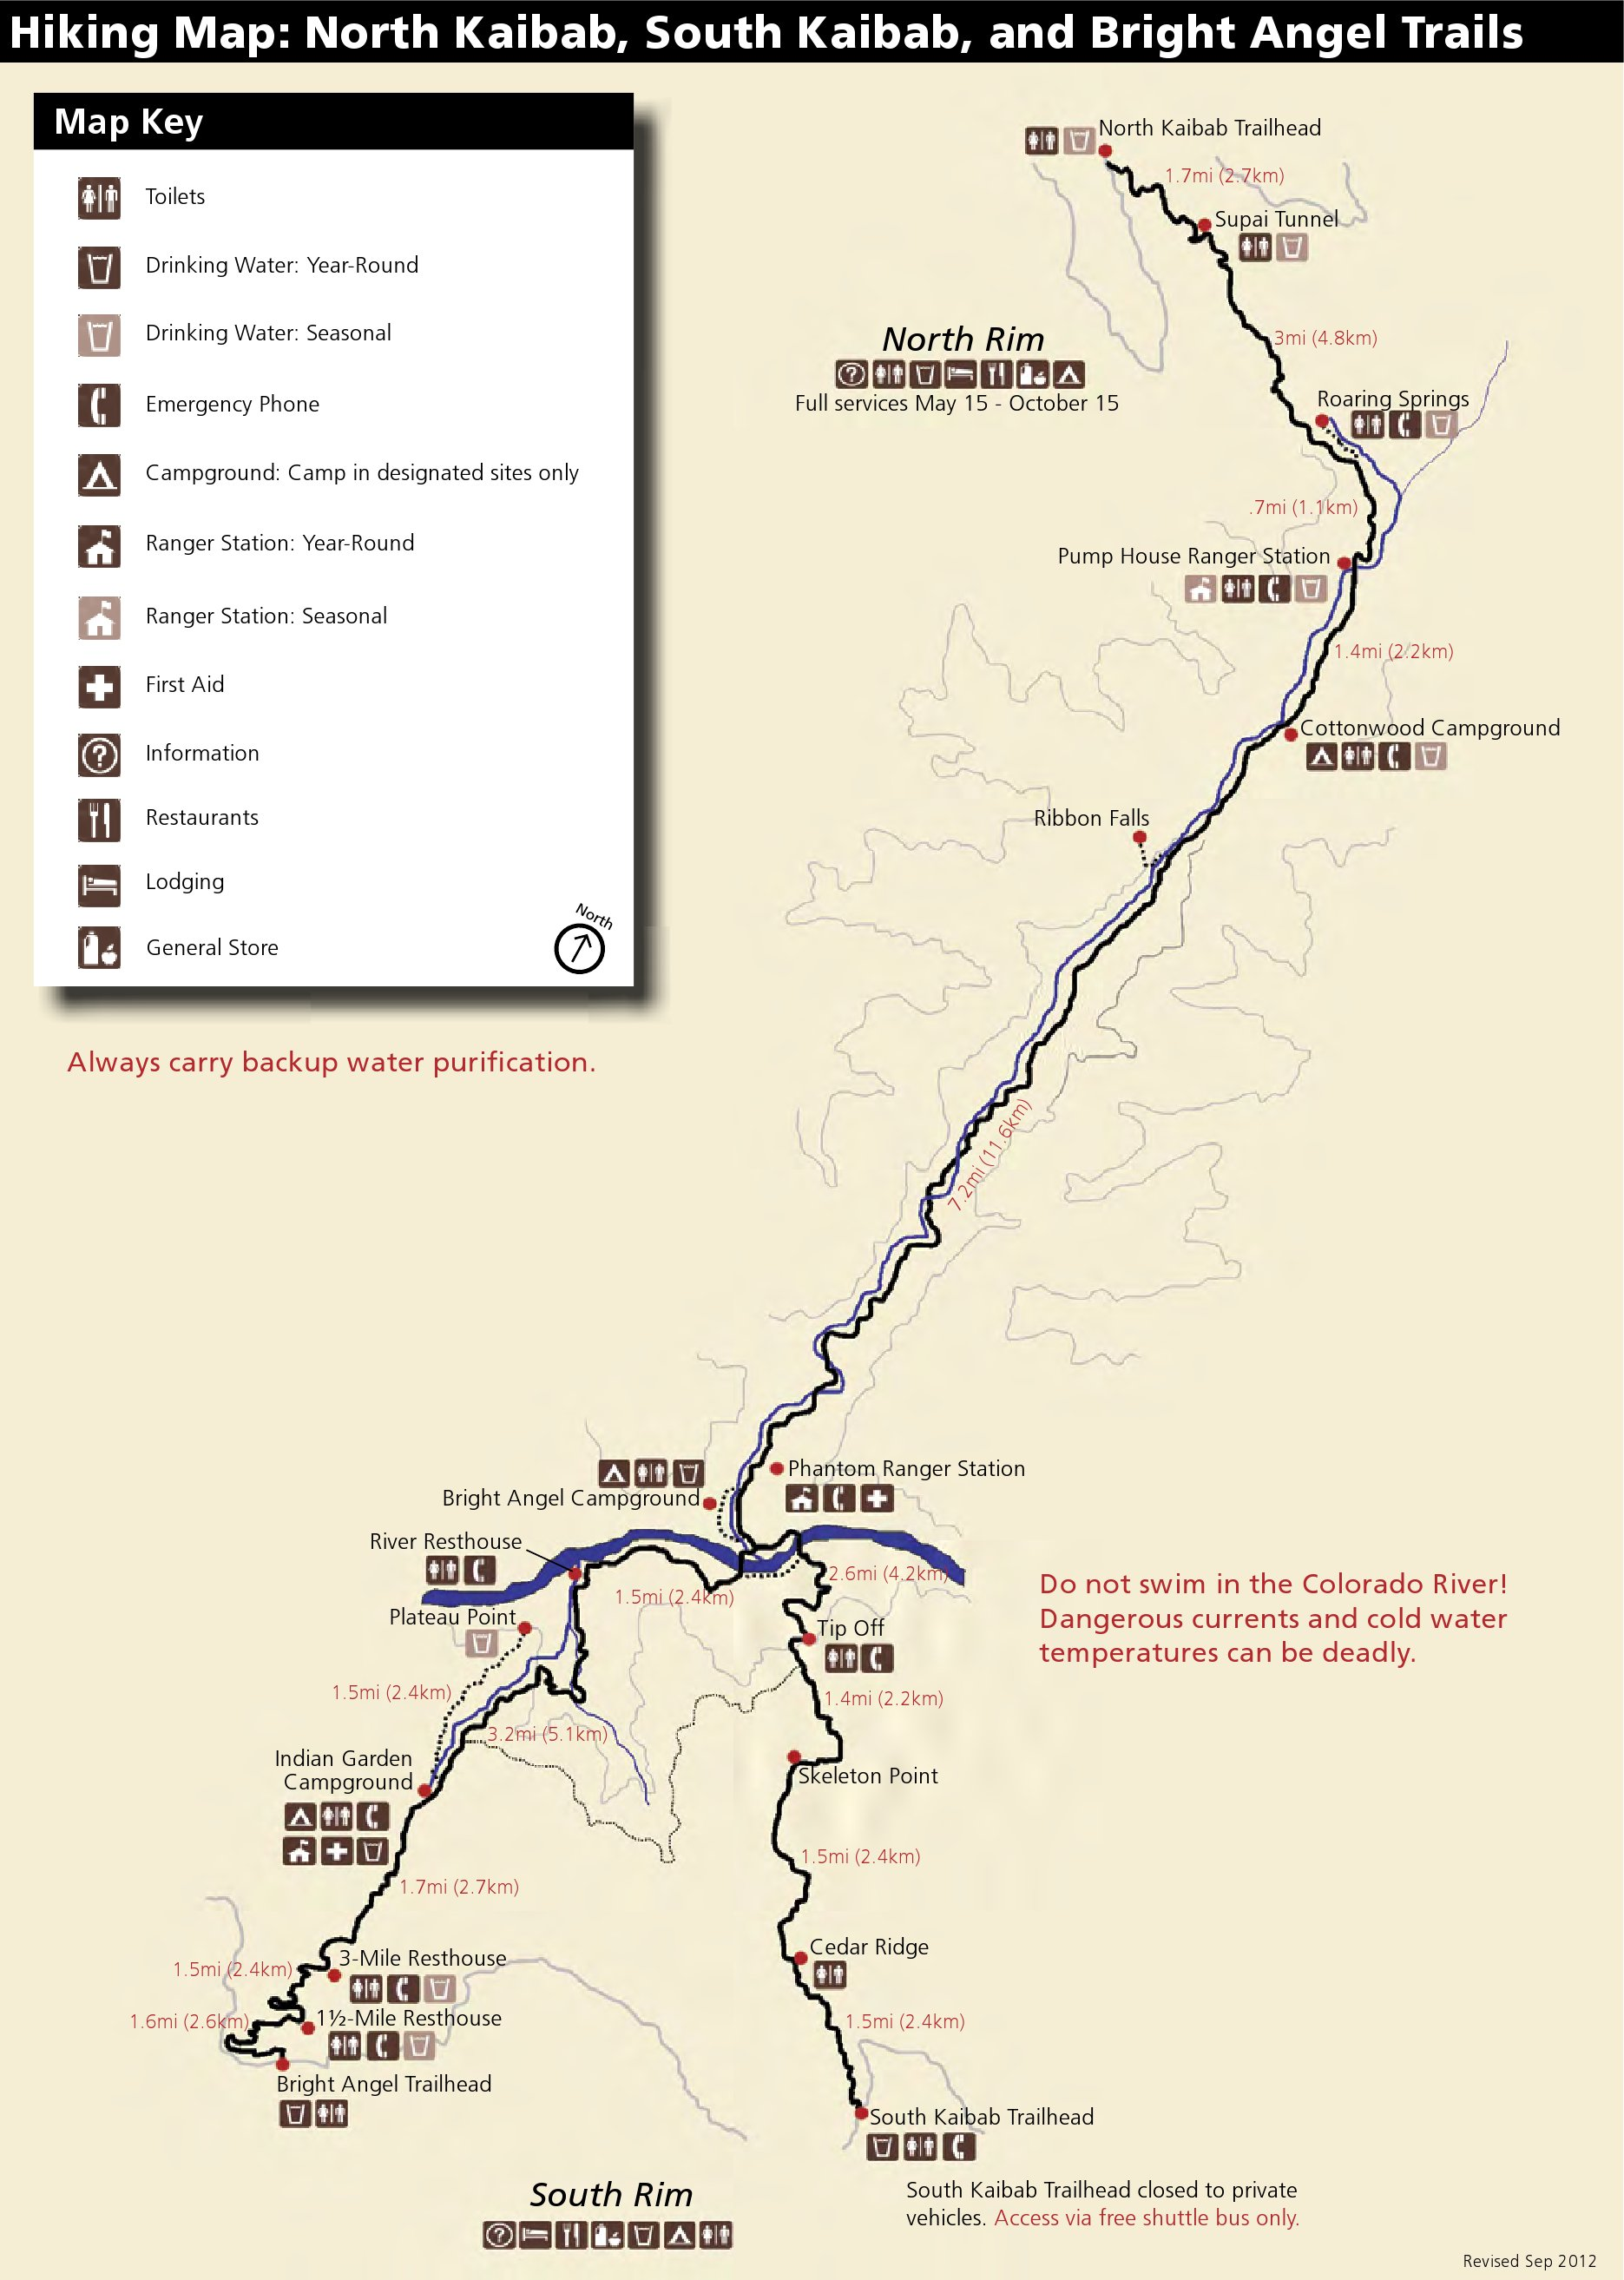 Grand Canyon Maps NPMapscom Just Free Maps Period - Us trails map